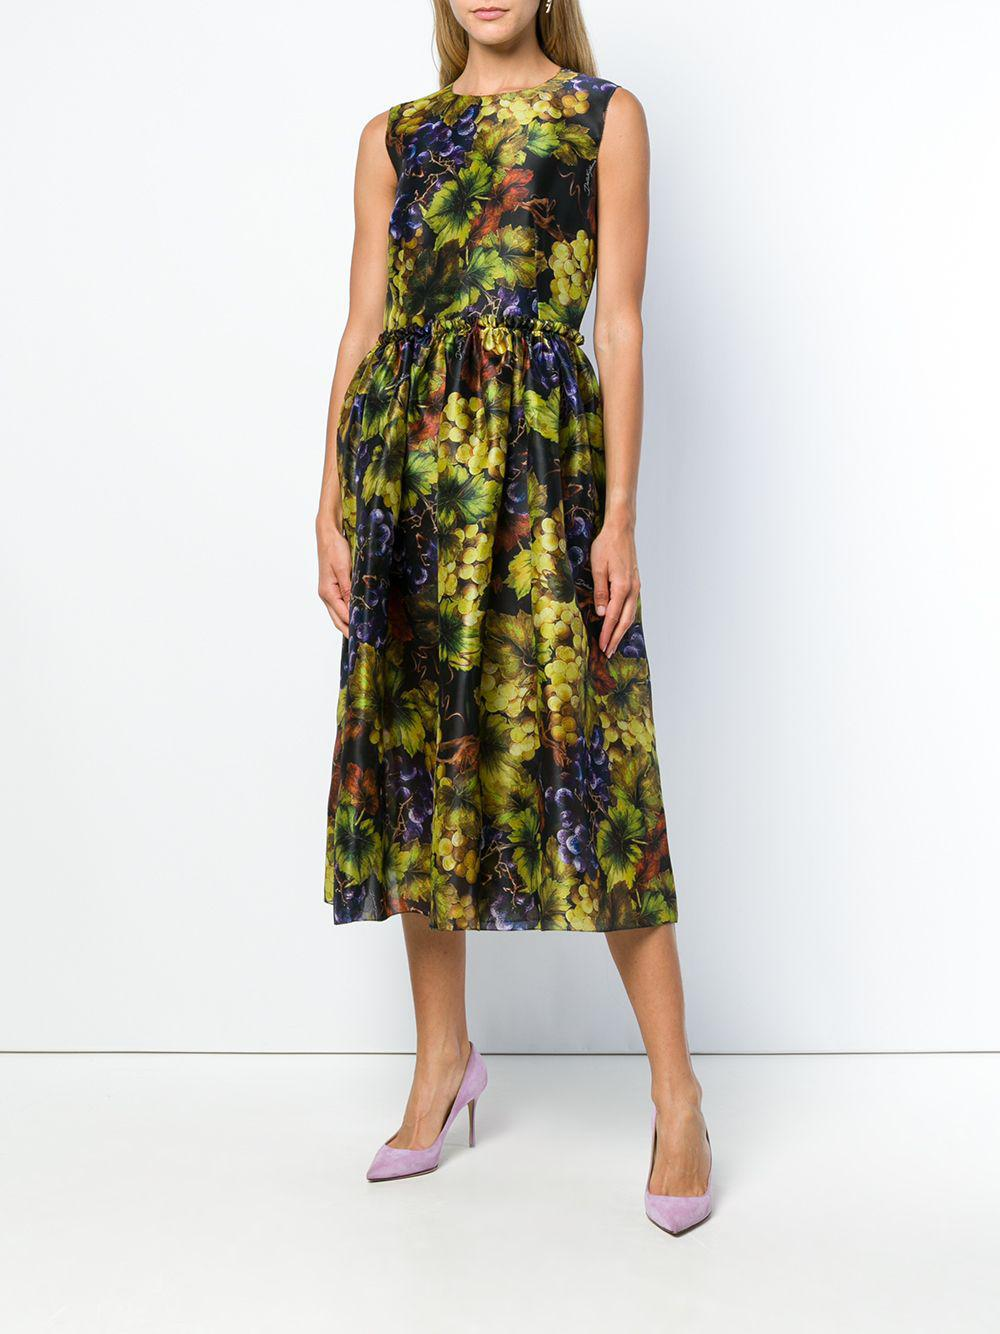 Lyst - Dolce   Gabbana Grapes Print Dress in Black 7608684f1